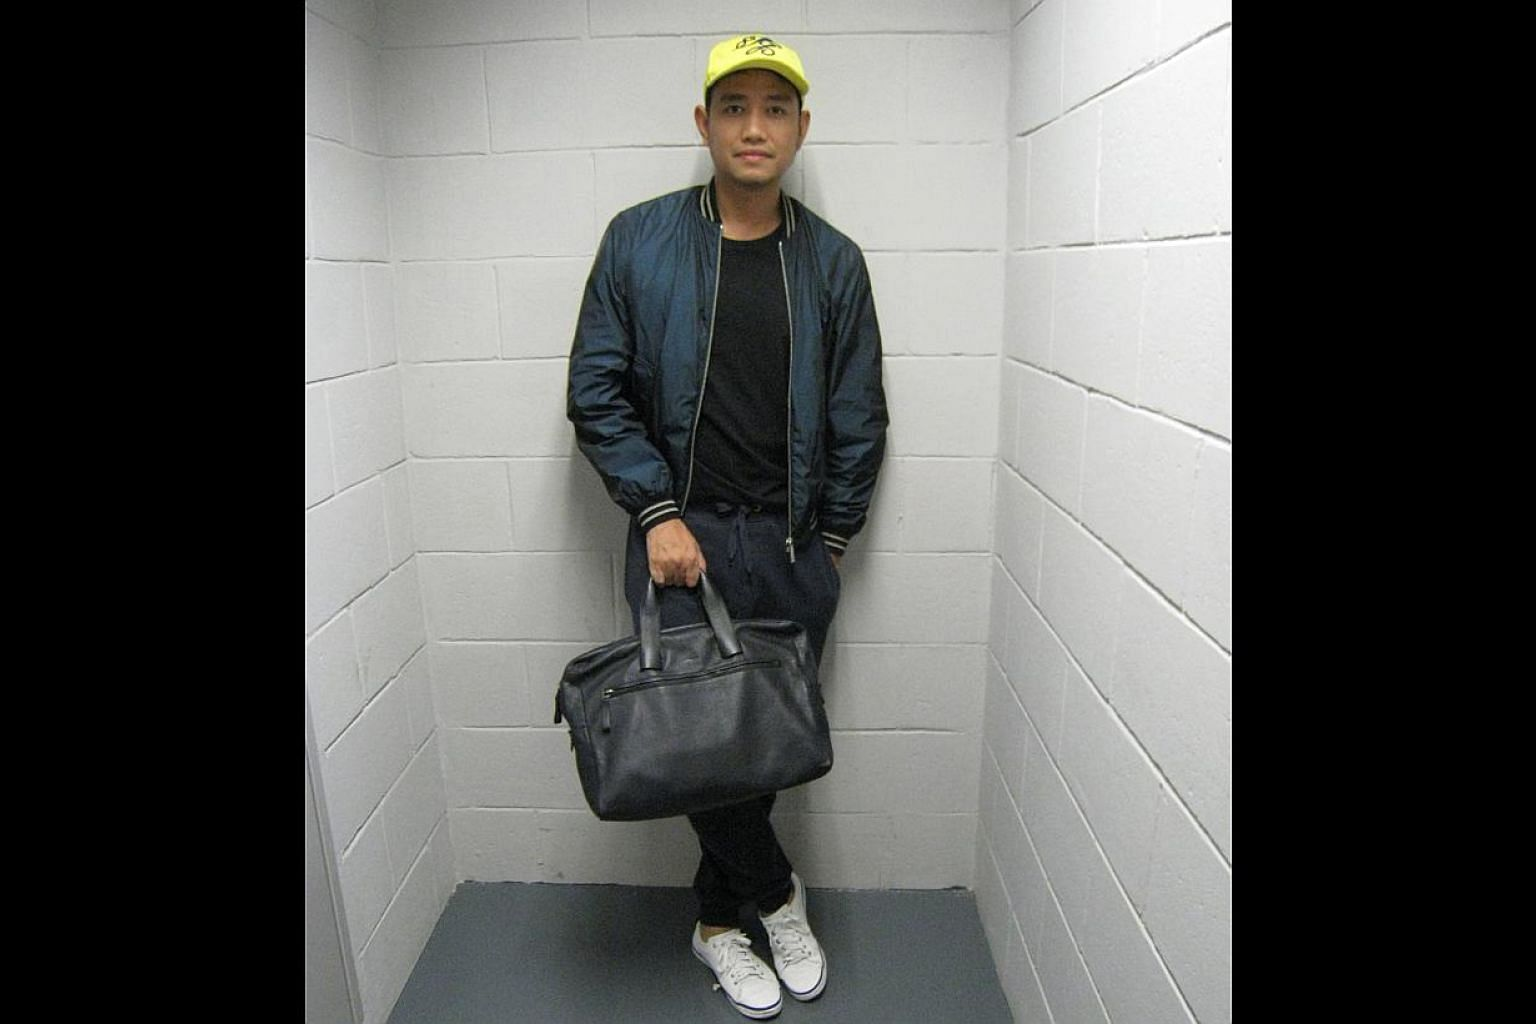 HIS BAG: Lanvin bag. It can pass as a business bag, and it is also soft and good for use on a casual day. The design is clean and simple, which is what I like in leather products. -- ST PHOTOS: SAMANTHA GOH